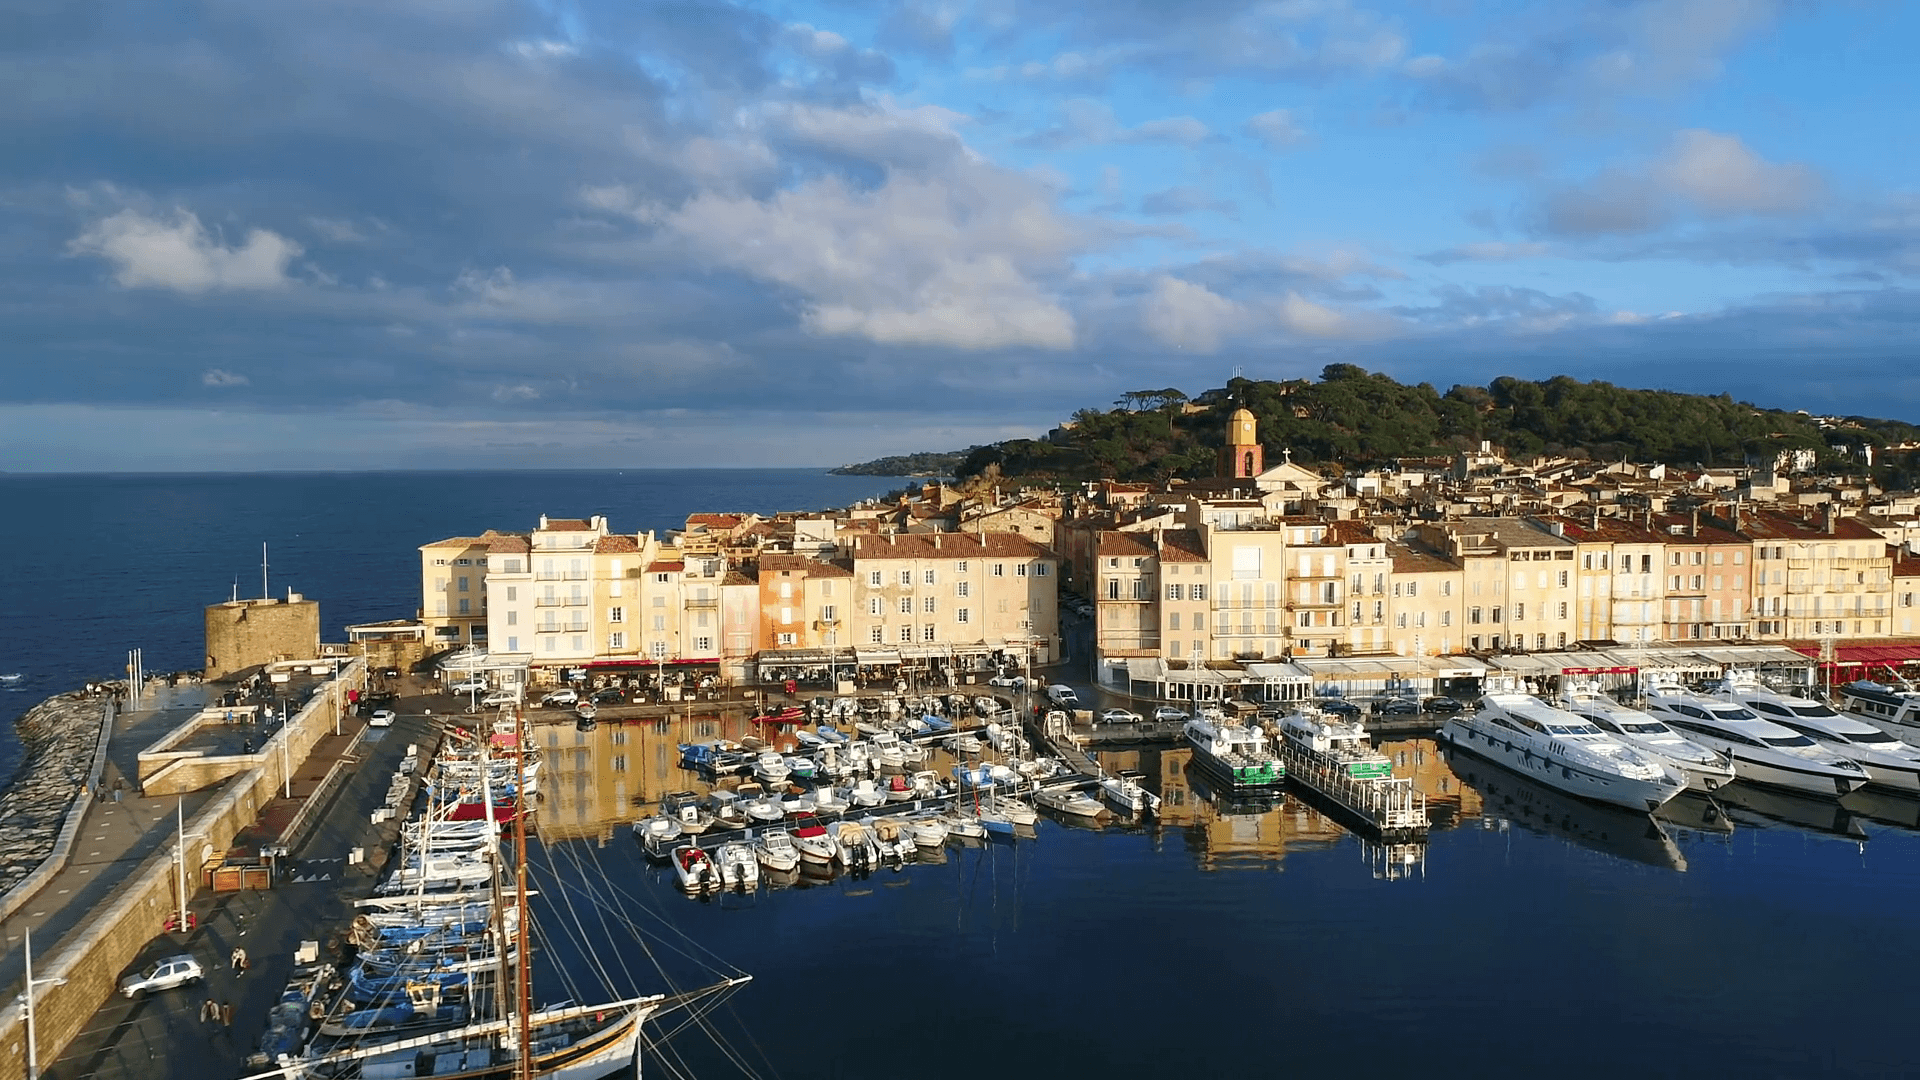 Free Download St Tropez France Wallpapers Top St Tropez